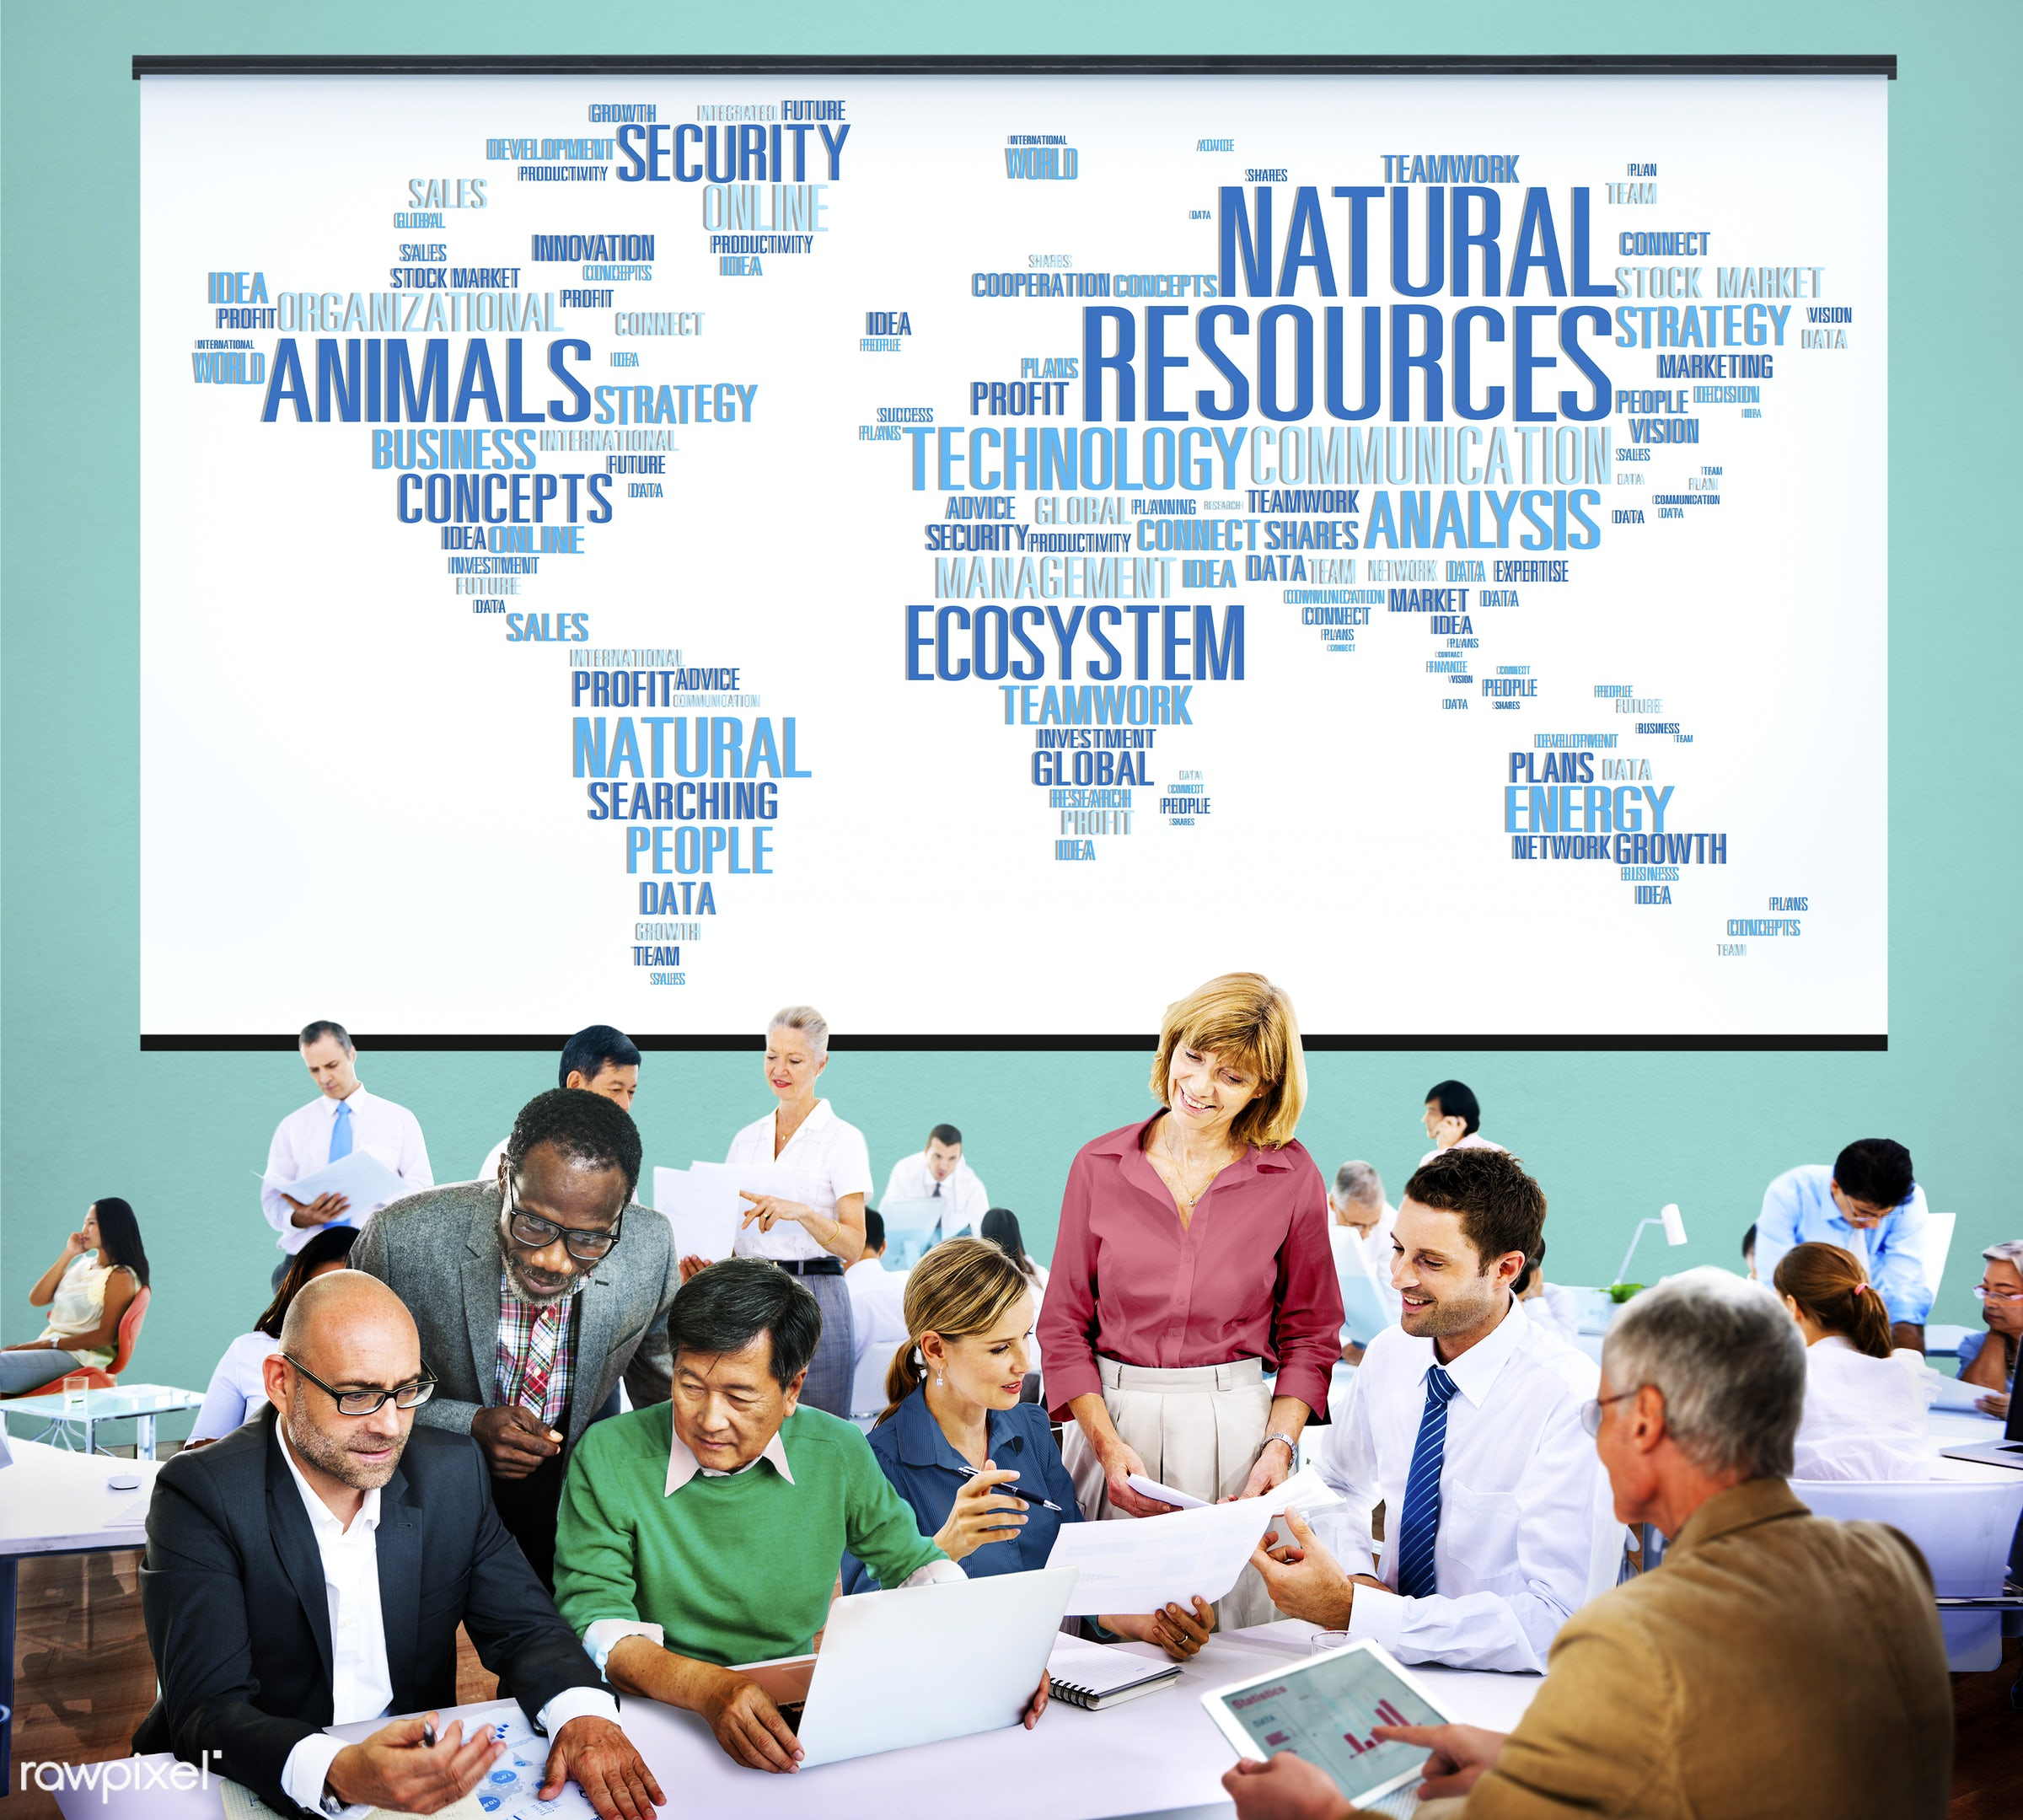 analysis, business, business people, businessmen, businesswomen, busy, cartography, communication, conservation, conserve,...